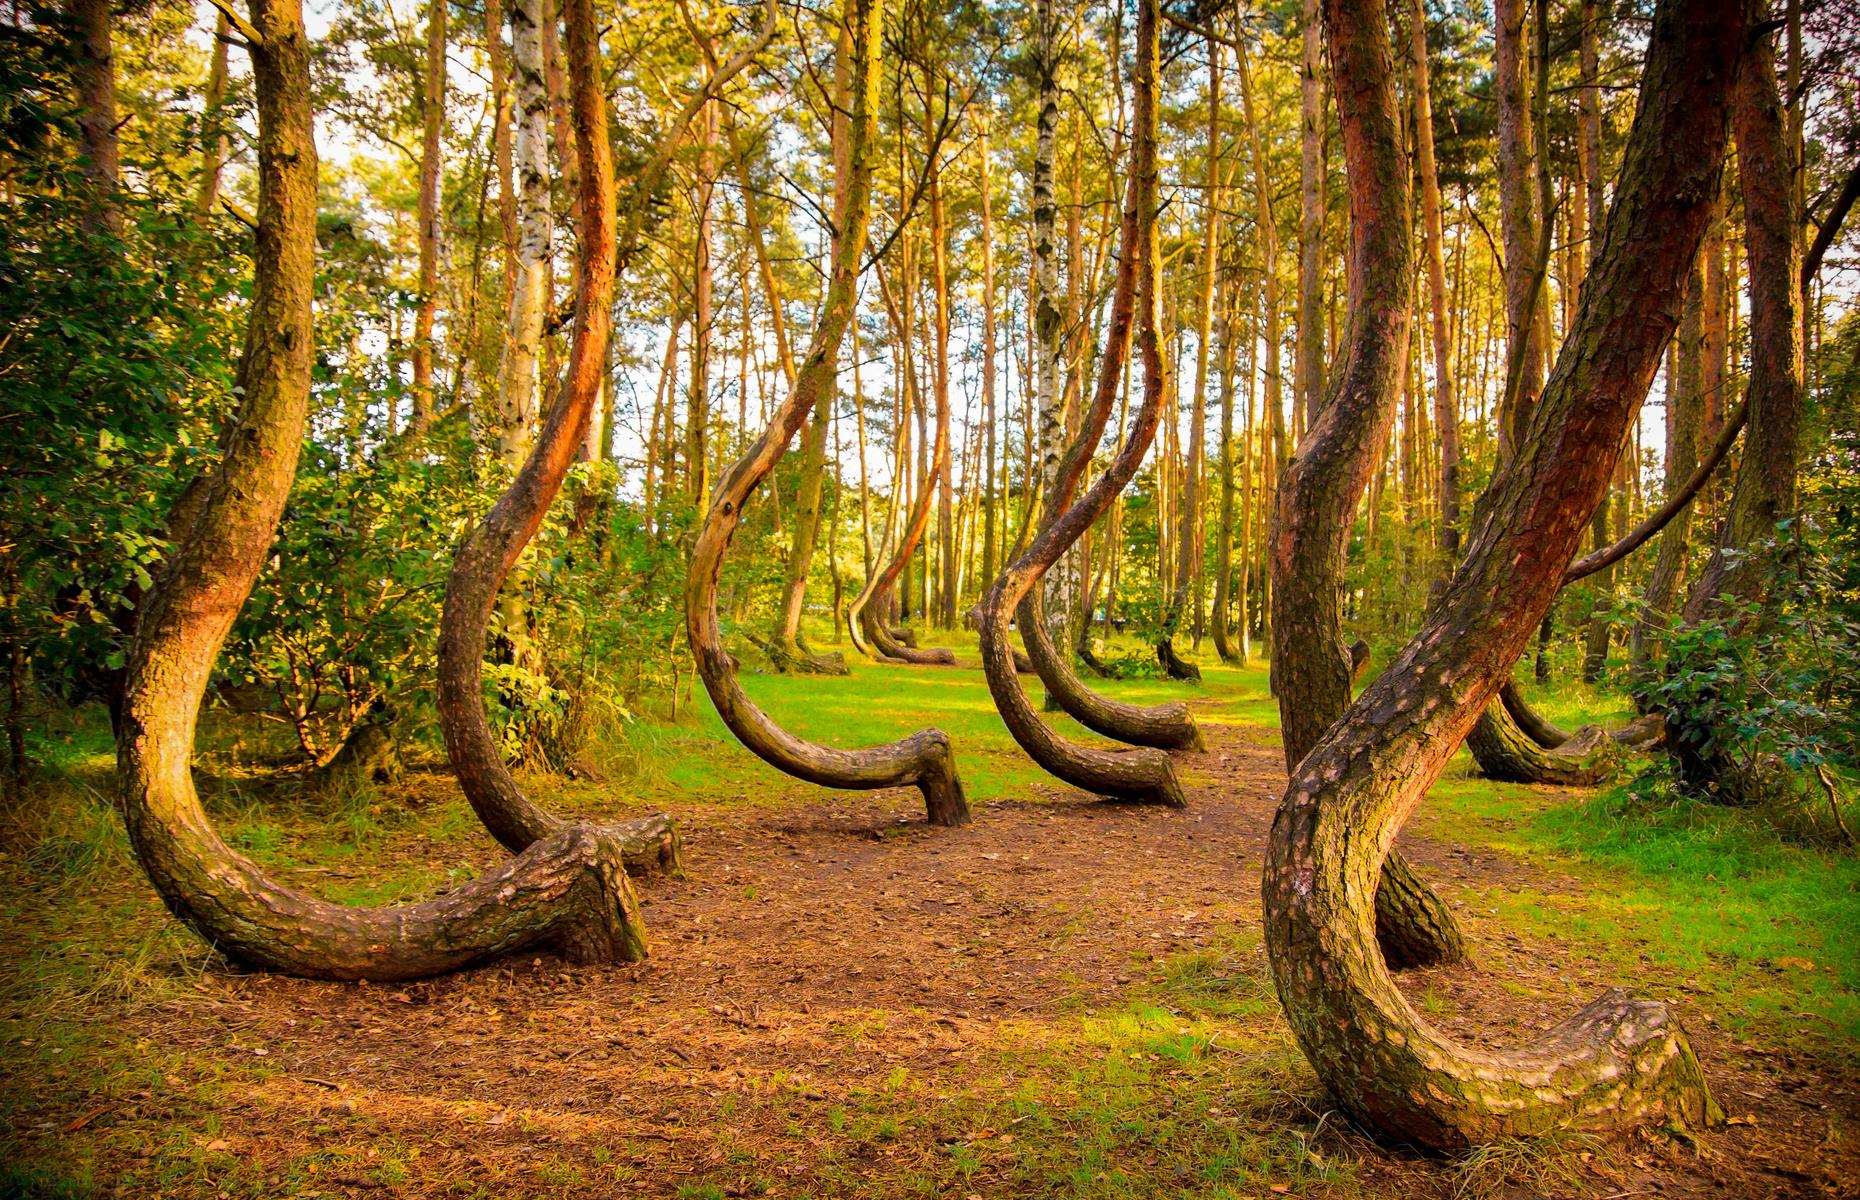 Slide 24 of 27: West Pomerania, one of the greenest regions of Poland, is home to the Crooked Forest, a series of 22 rows of trees, all with curved bases pointing north. The jury is still out as to whether these eerie trees naturally bend or were planted in a way to achieve this effect. One thing's for sure, either way: they look like something straight from another planet.